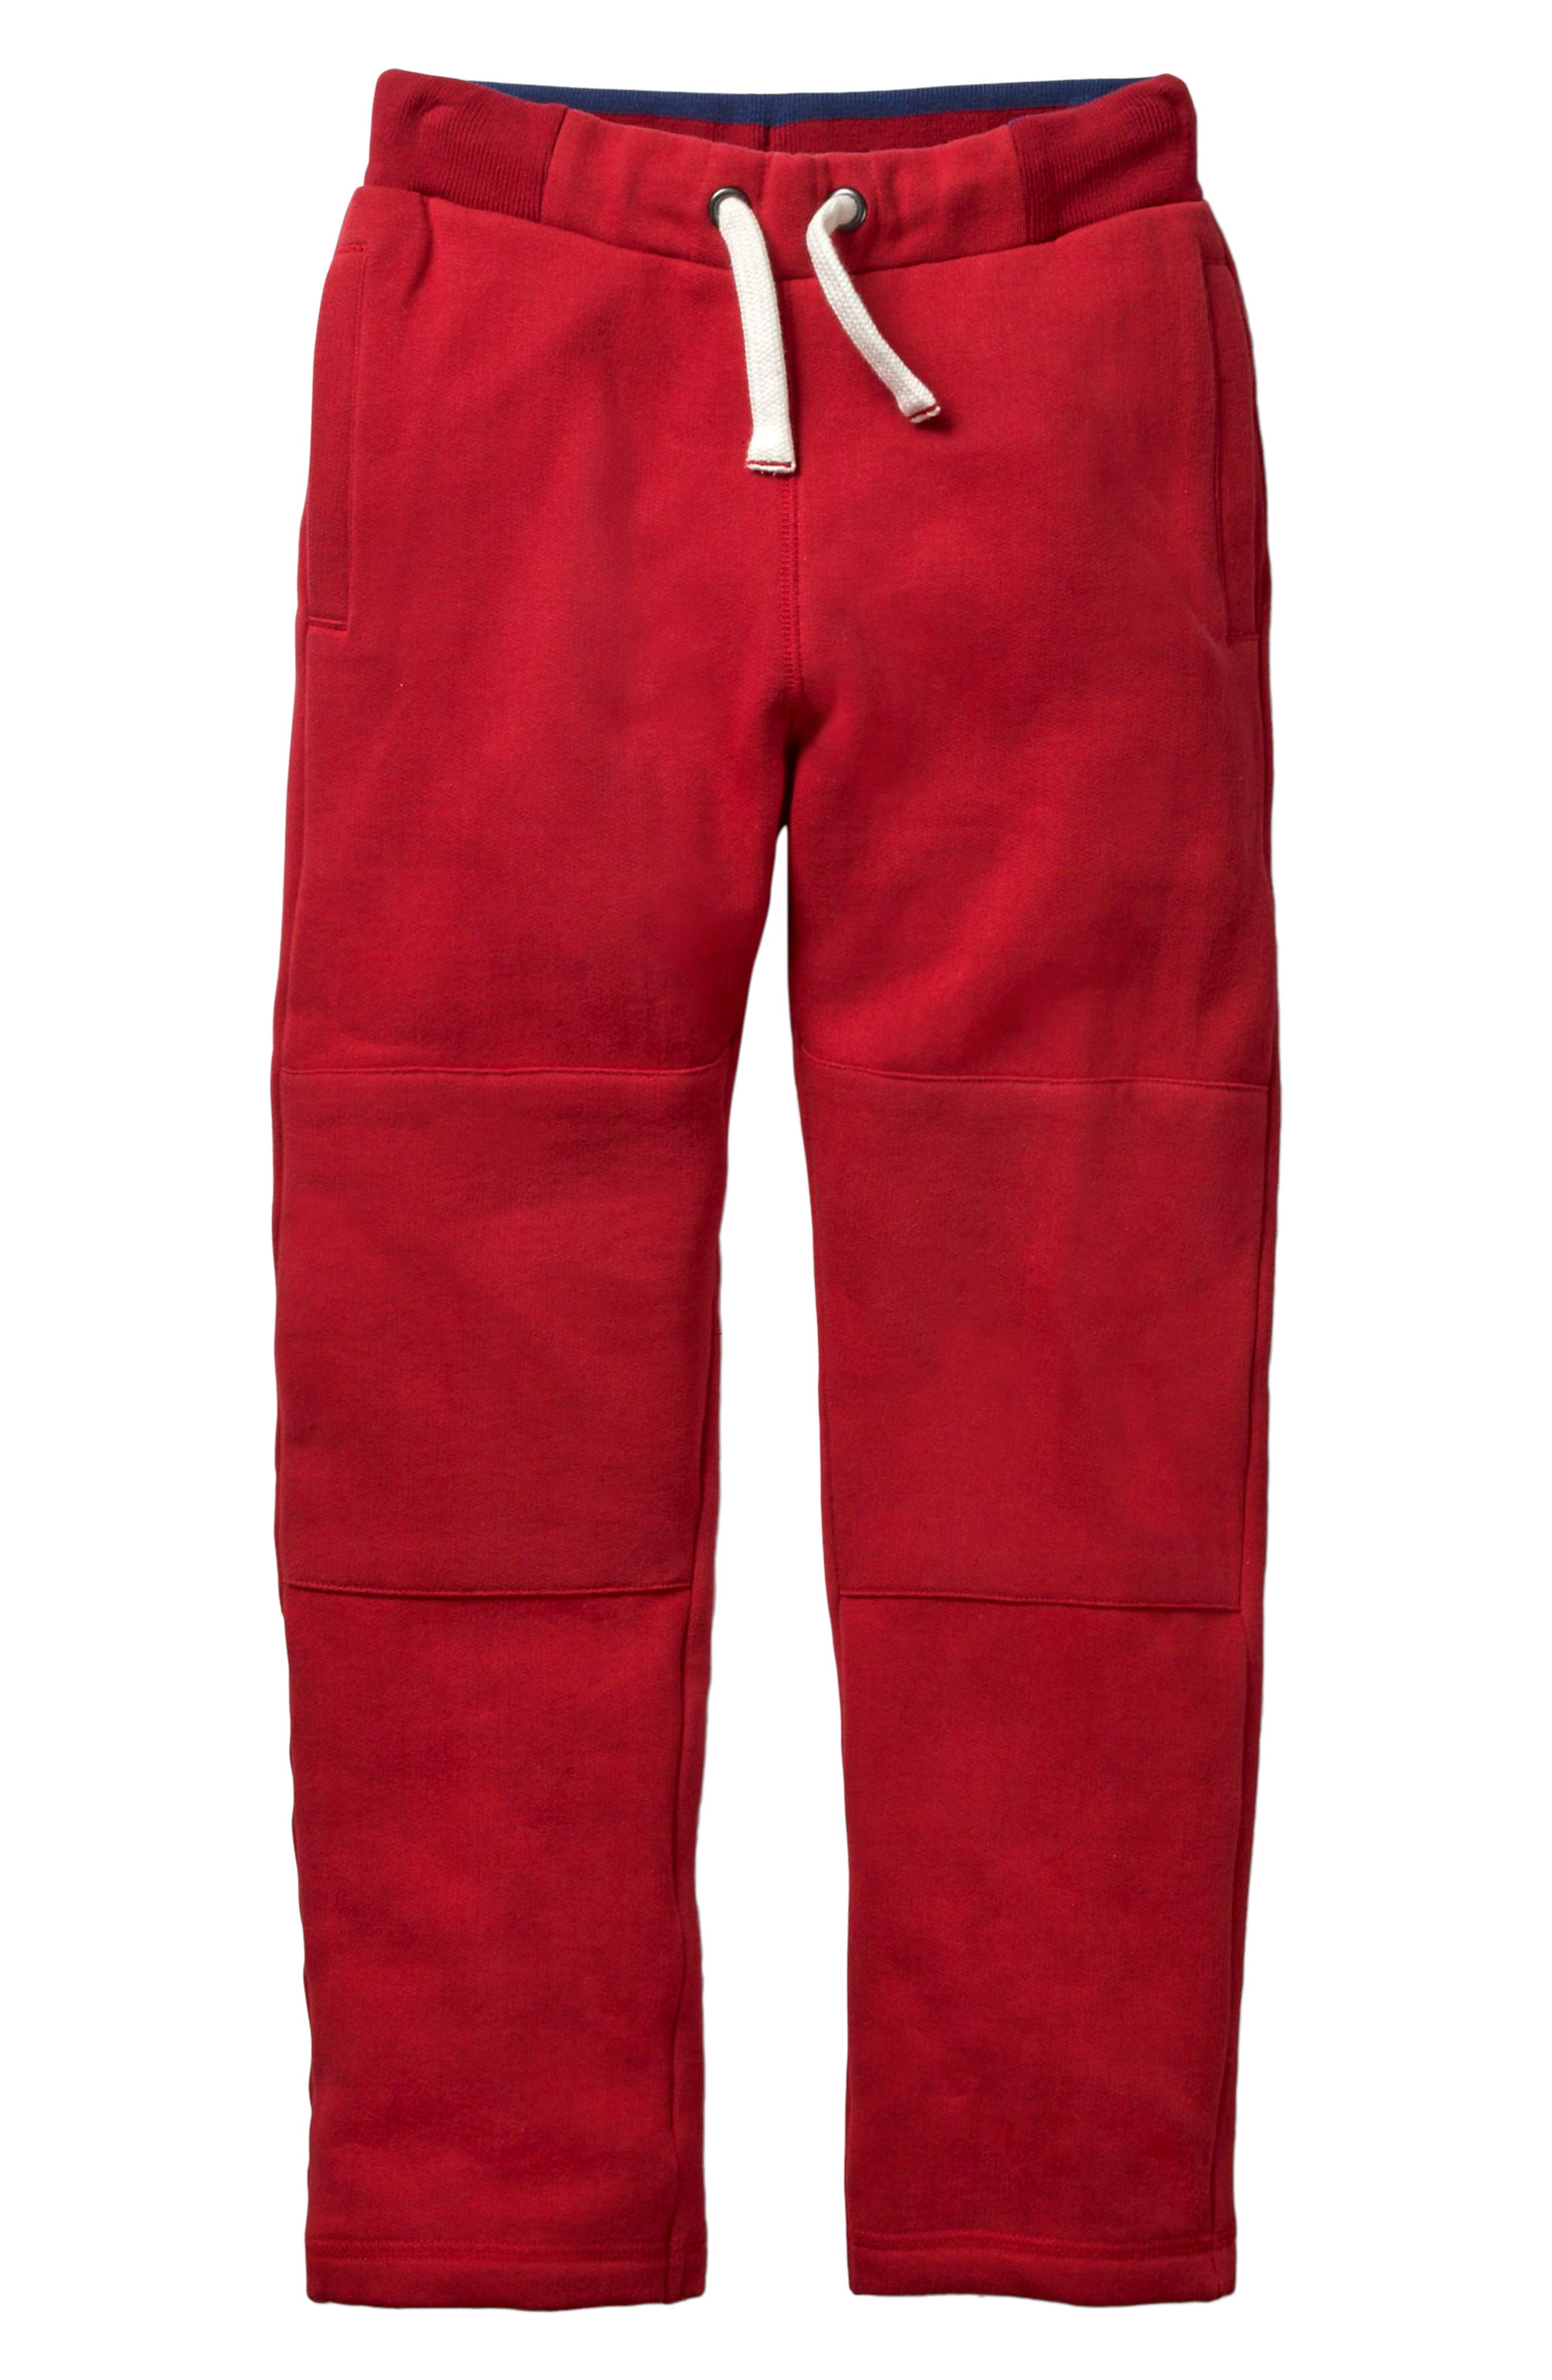 Warrior Knee Sweatpants,                             Main thumbnail 1, color,                             Engine Red